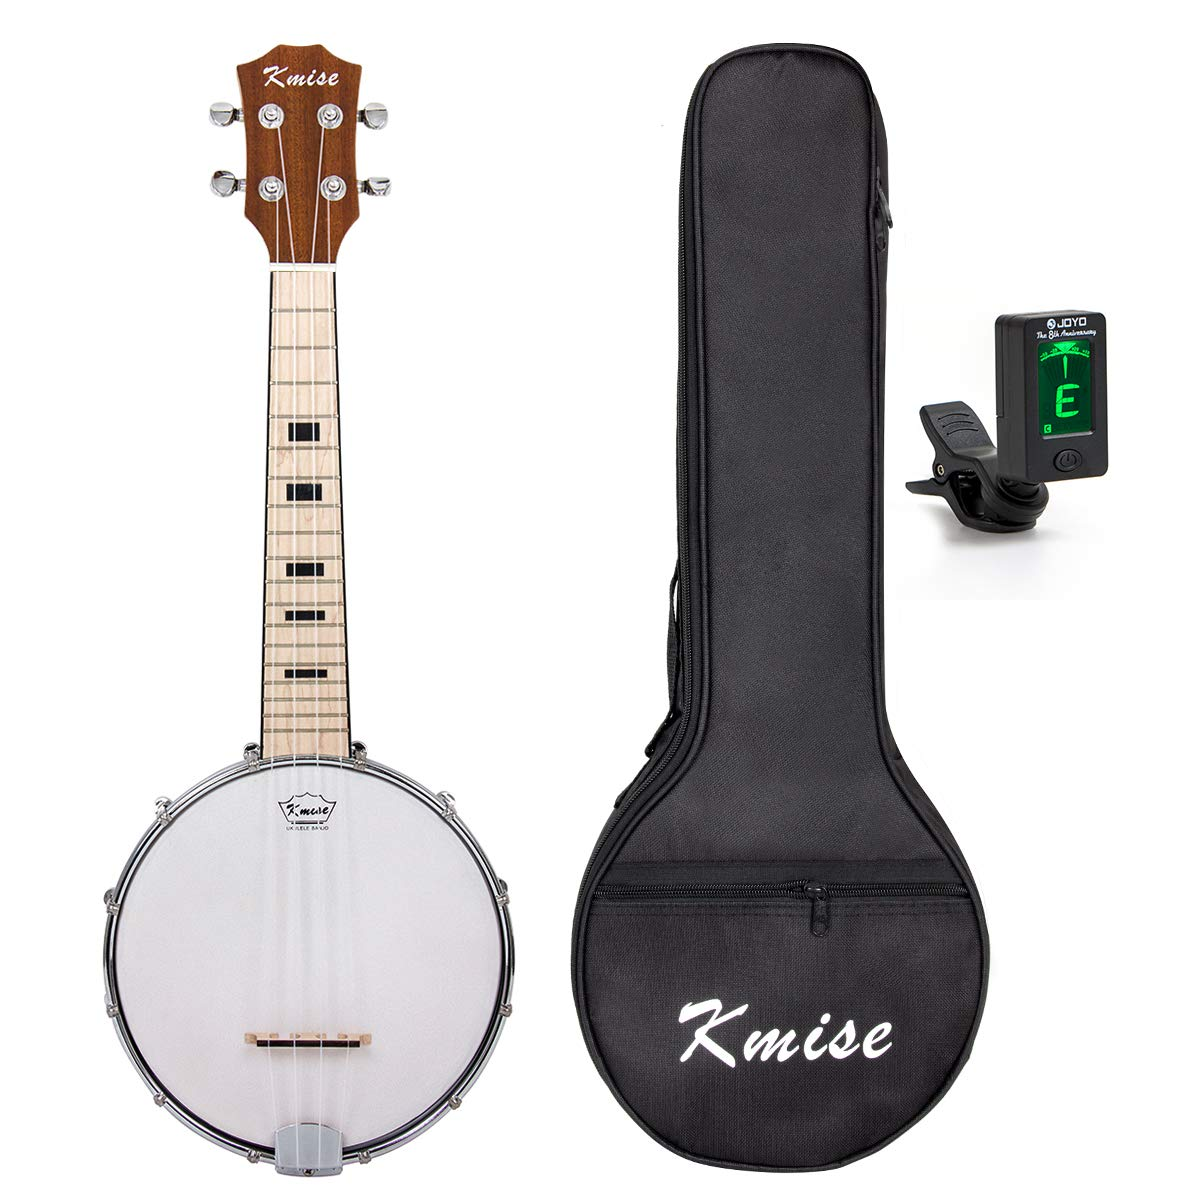 Kmise Banjo Ukulele 4 String Banjo lele Ukelele Uke Concert 23 Inch Size Maple with Bag Tuner Shenzhen Lotmusic Technologe Co. Ltd Banjolele With Bag